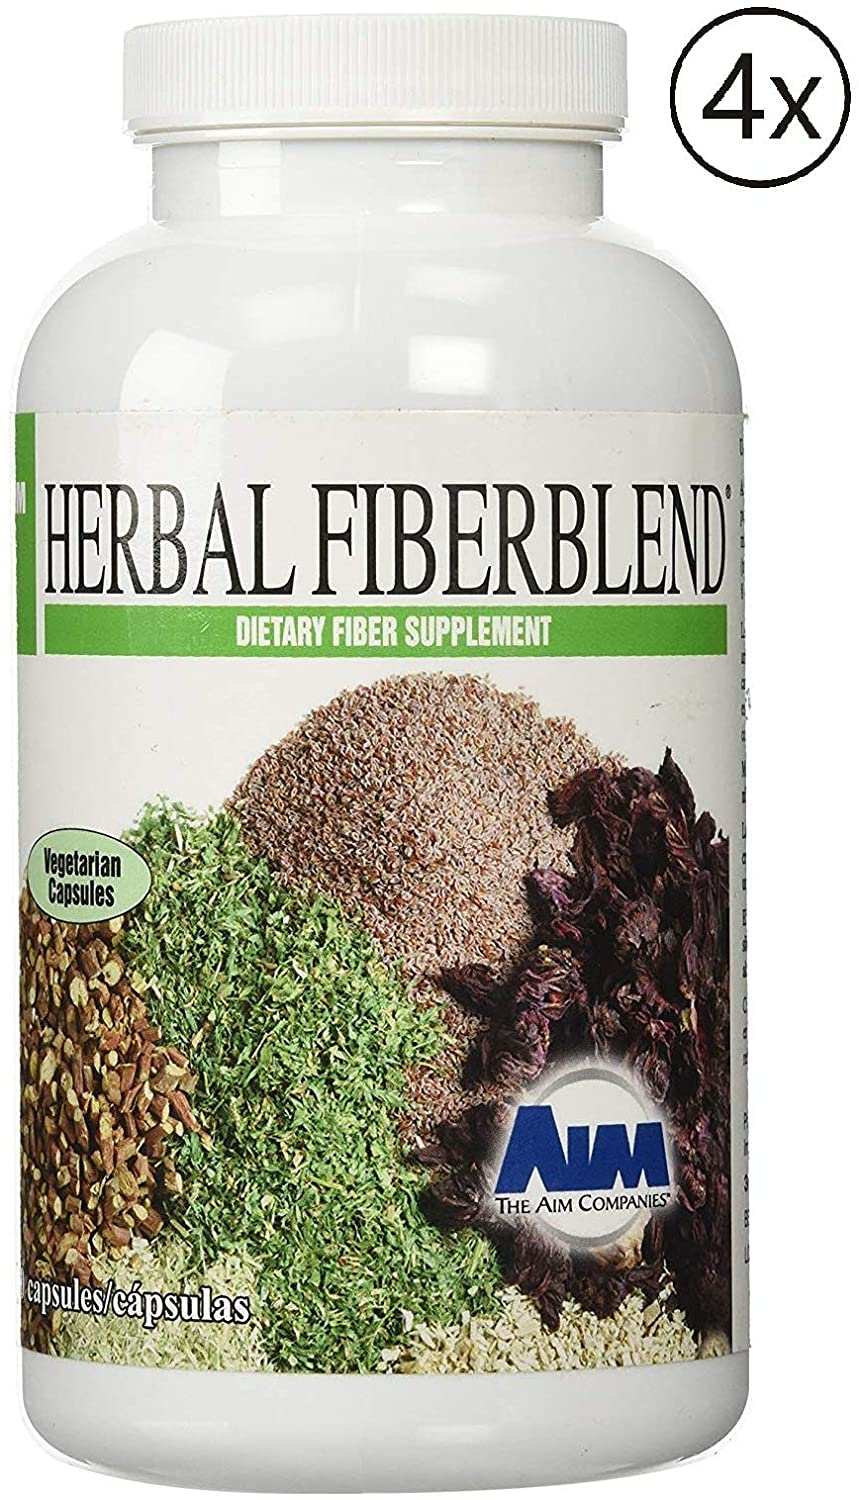 AIM Herbal Fiberblend 280 Capsules (4 Bottle) Helps Maintain Whole Body Healthy